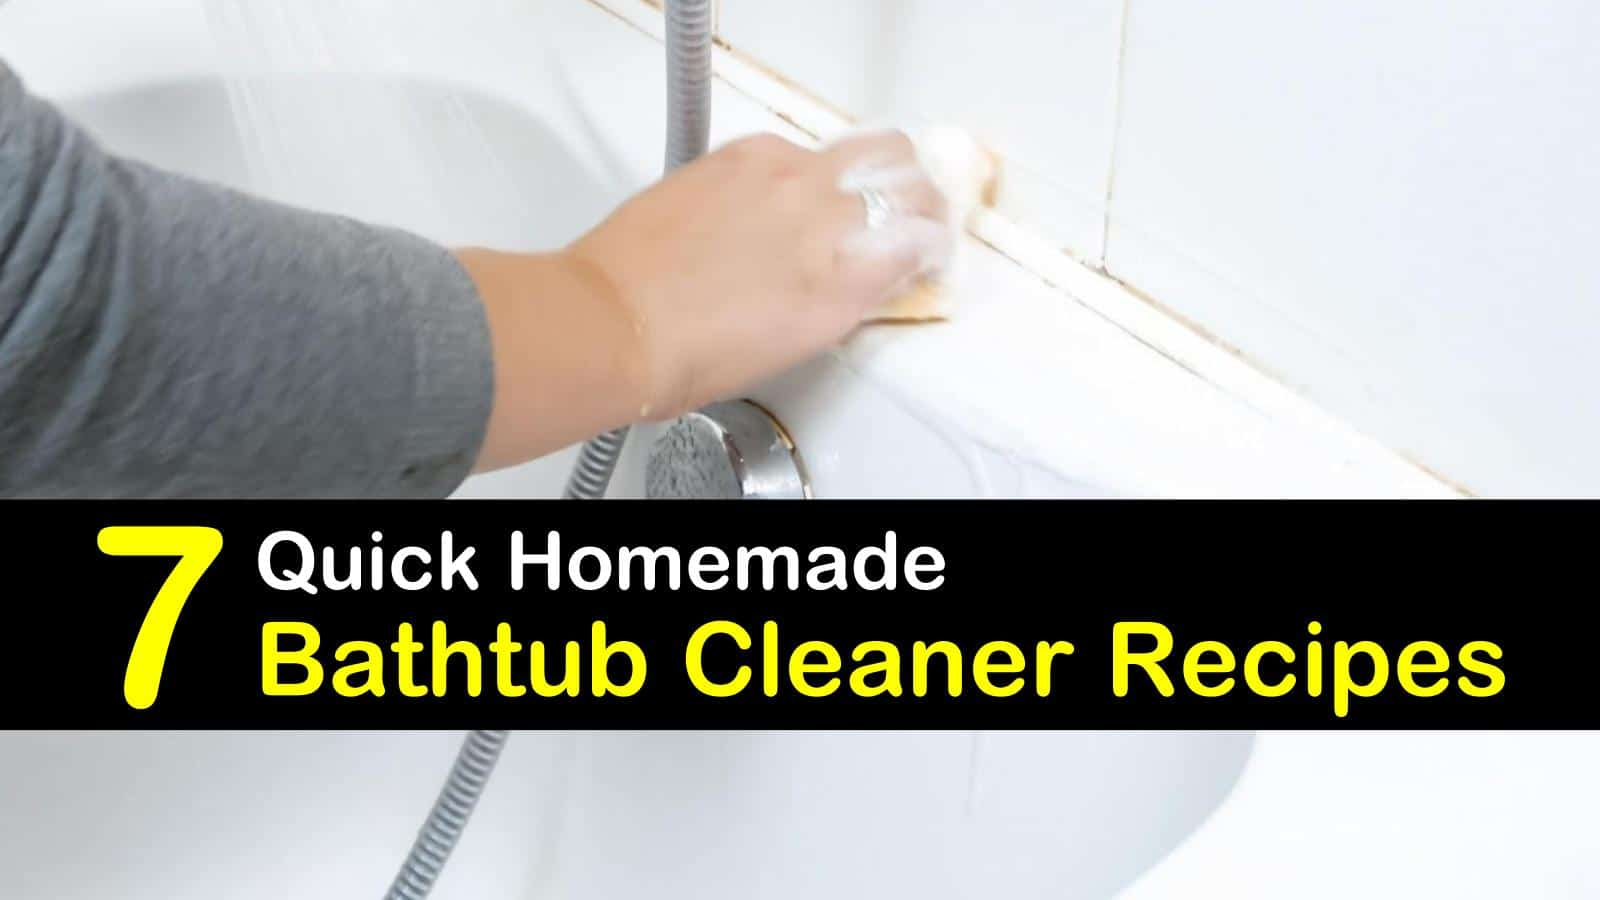 homemade bathtub cleaner titleimg1